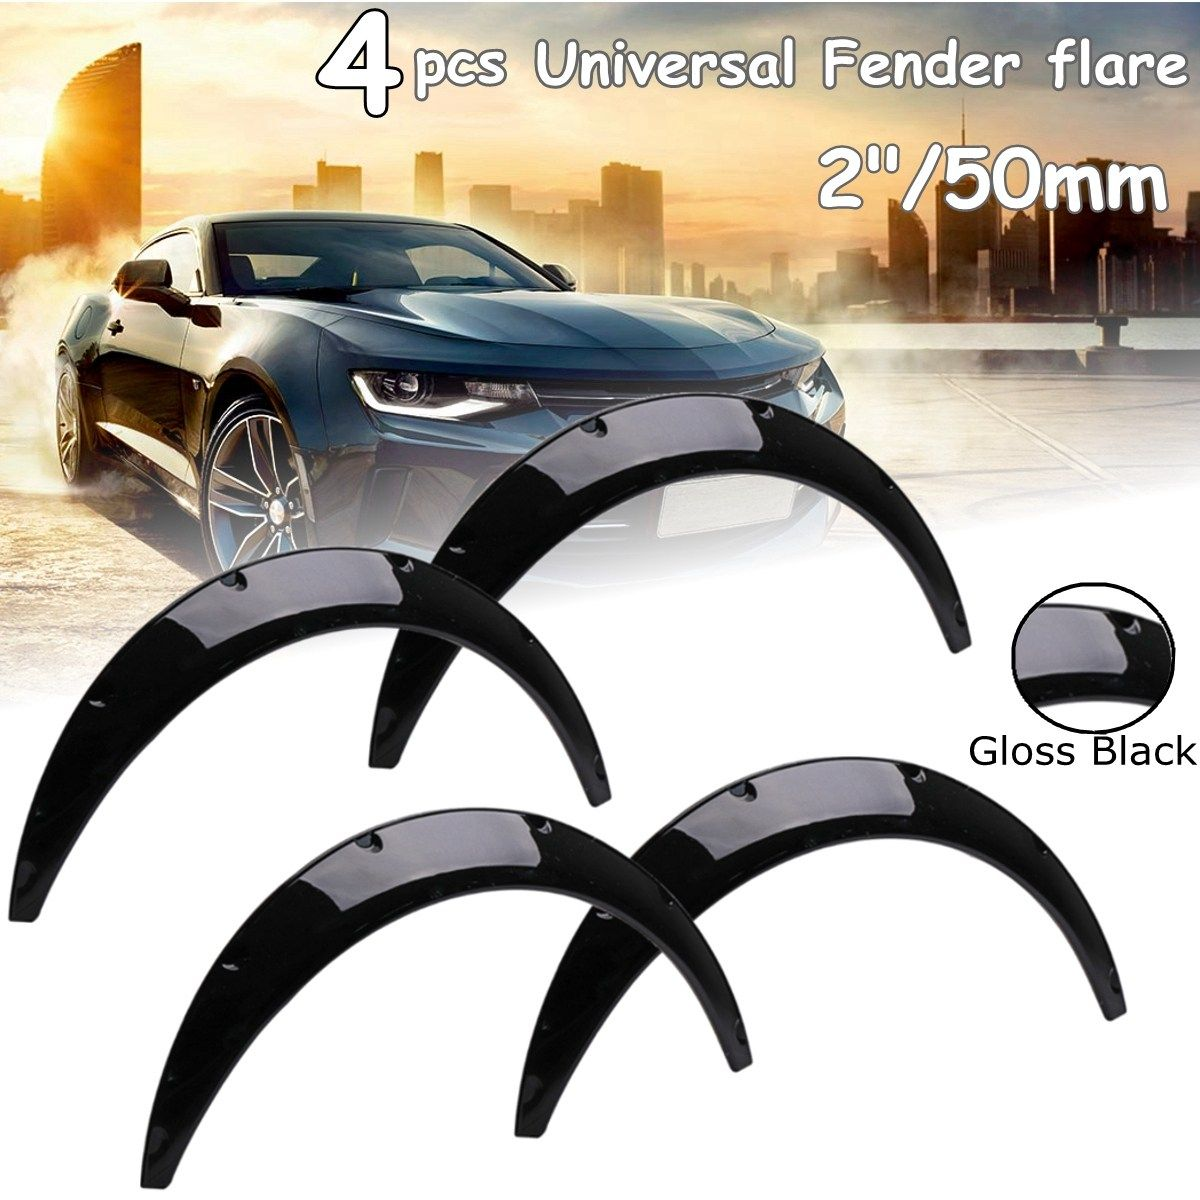 4Pcs 2inch Universal Gloss Black Flexible Car Body For Fender Flares Extension Wide Wheel Arches